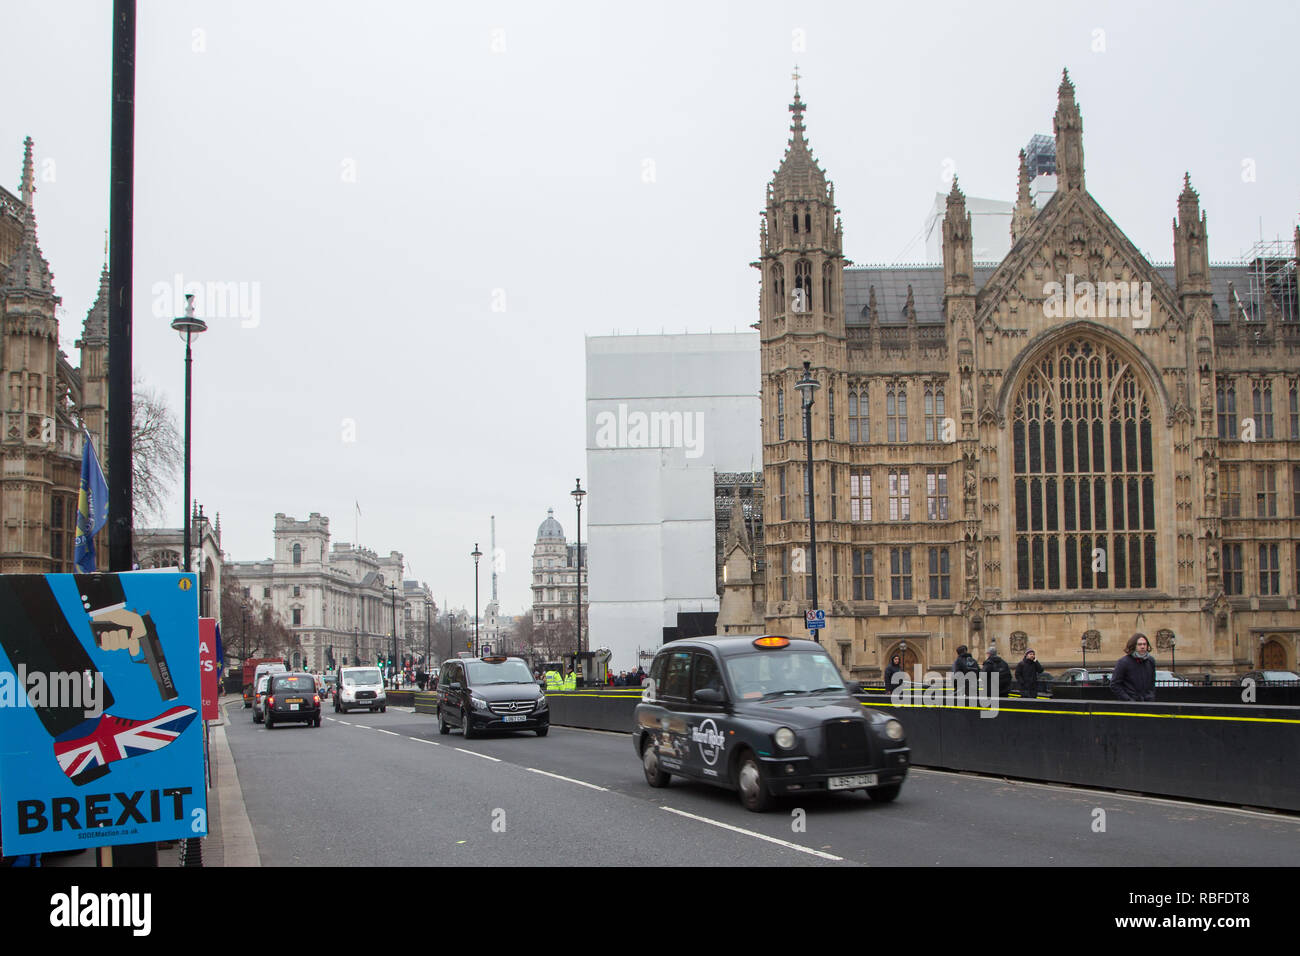 London, UK. 10th Jan 2019 : Anti-Brexit protesters demonstrate outside the Houses of Parliament in Westminster. Credit: Thabo Jaiyesimi/Alamy Live News Stock Photo